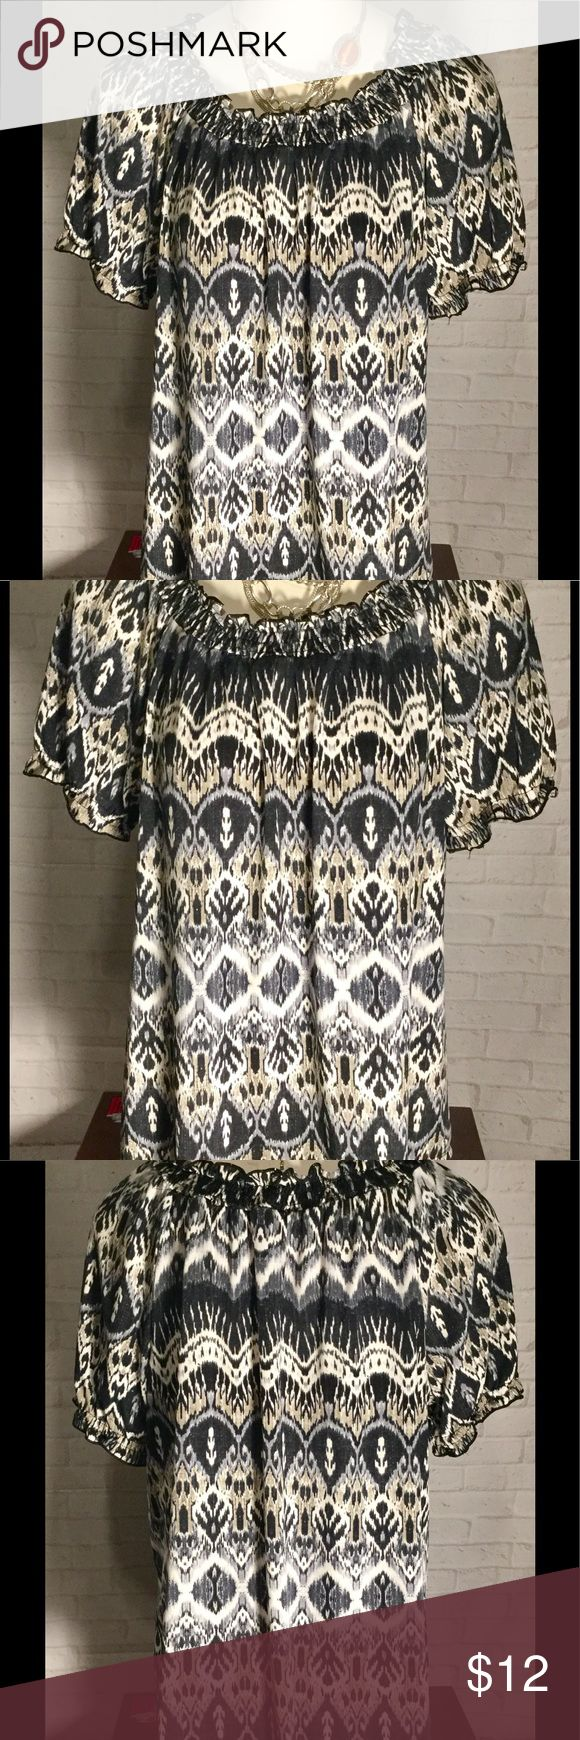 Notations women's large Aztec blouse excellent con This beautiful, stylish, comfy women's large Aztec blouse is in excellent condition, flawless and comes from a smoke free home.  Buy with confidence I am a top rated seller, mentor and fast shipper.  Don't forget to bundle and save.  Thank you. Notations Tops Blouses